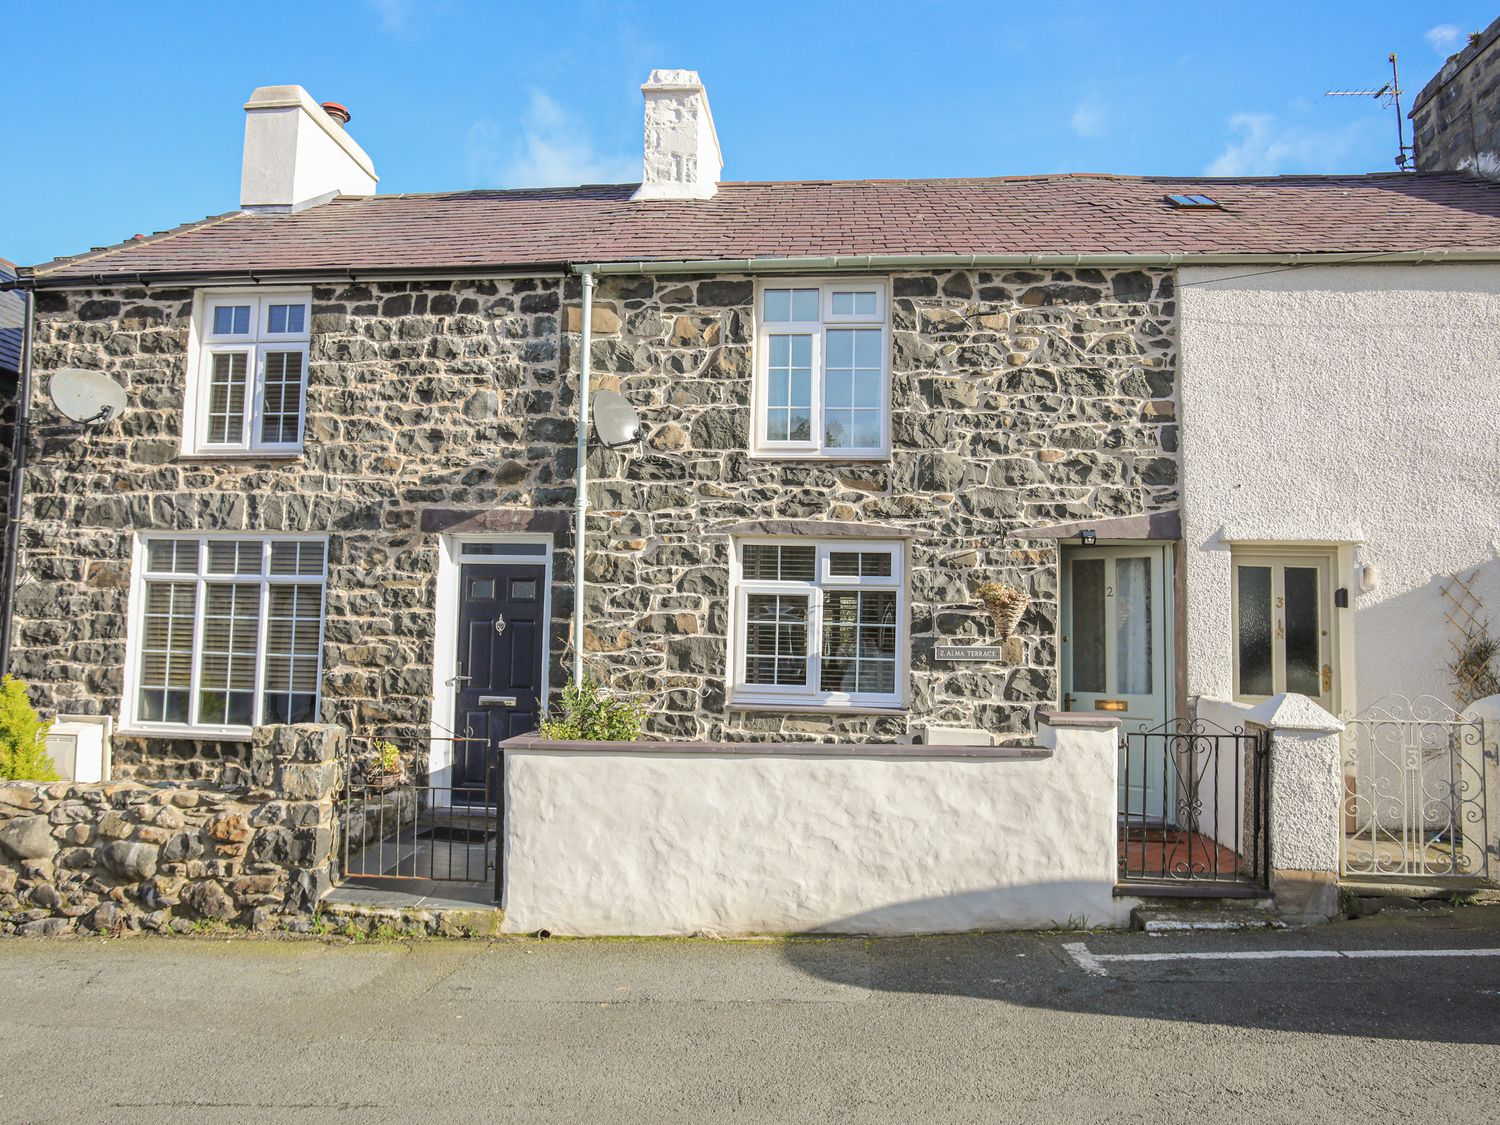 2 Alma Terrace - North Wales - 1044017 - photo 1